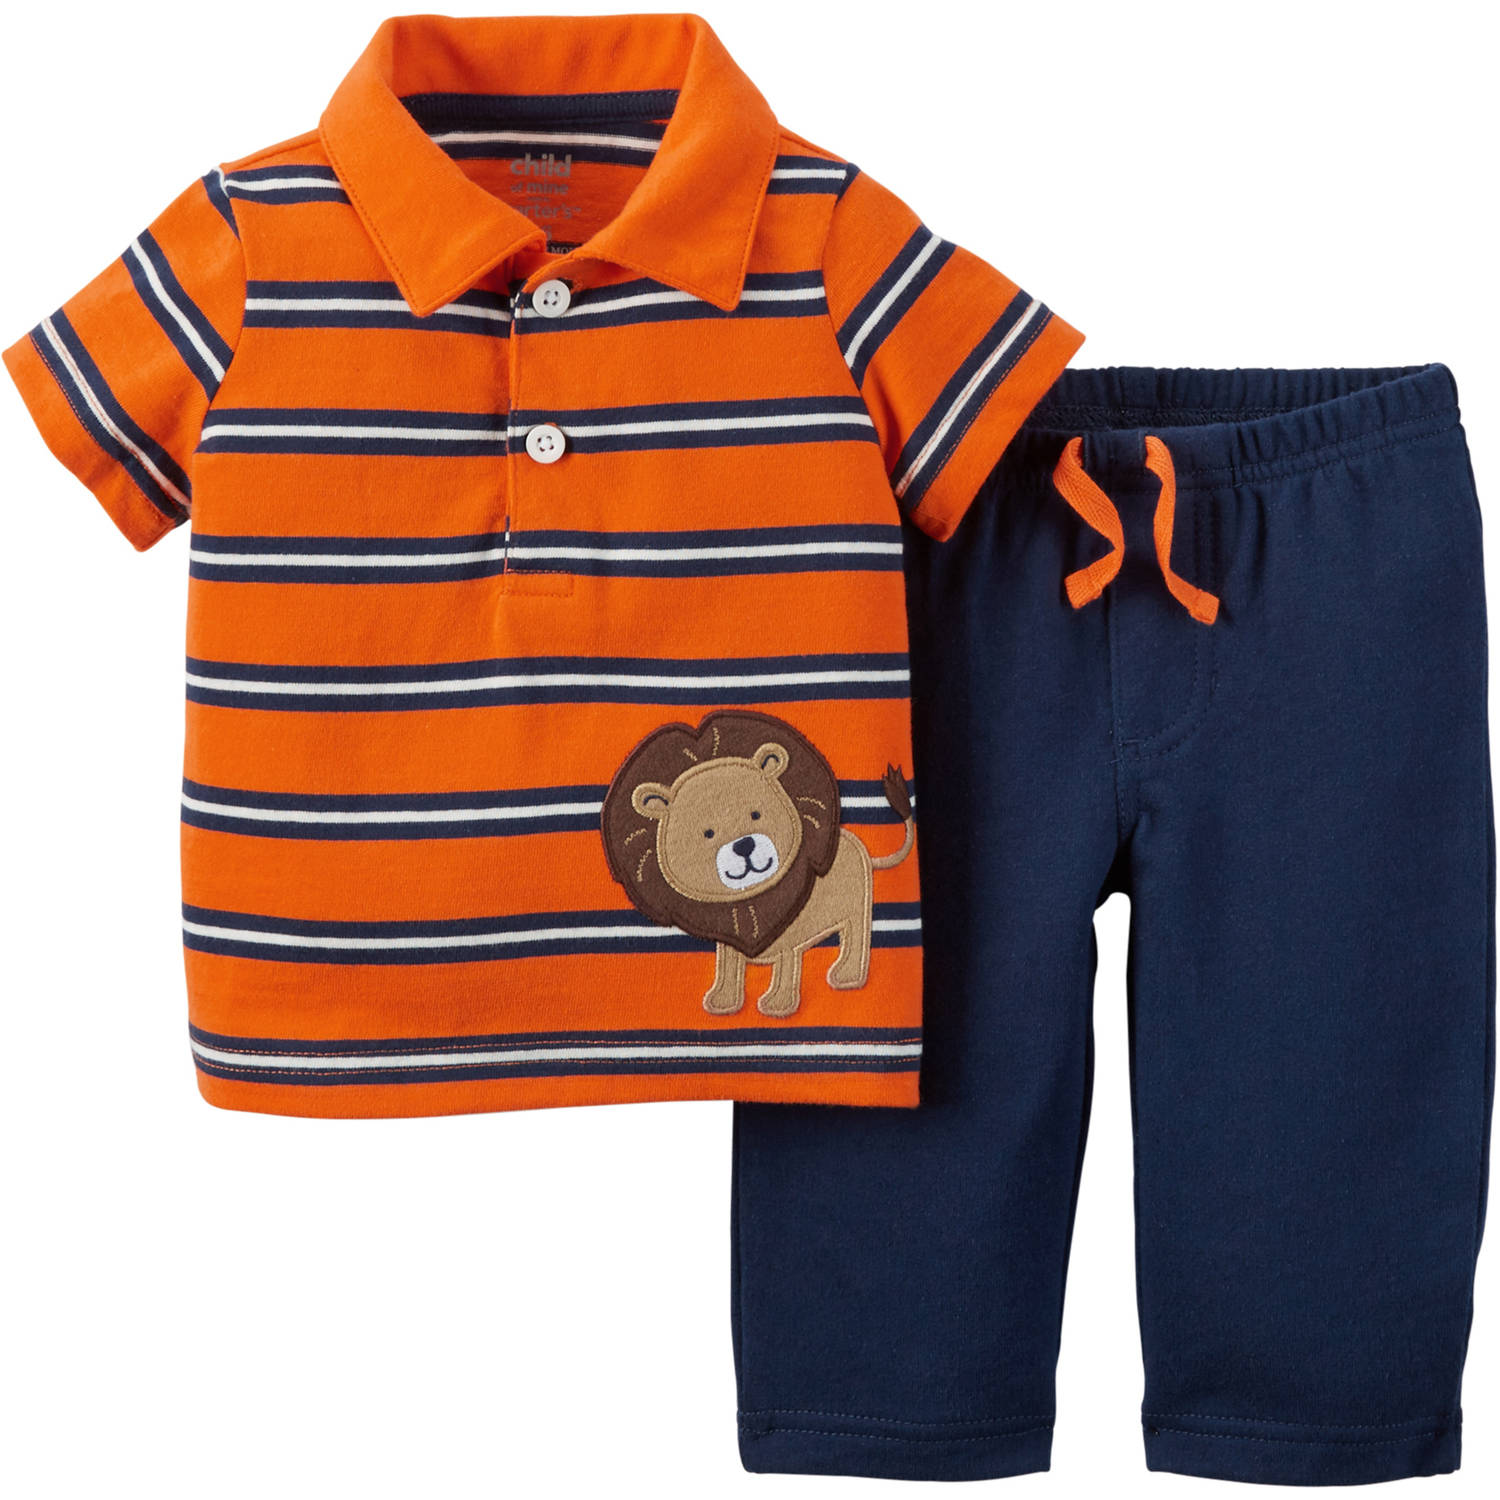 Child of Mine by Carter's Newborn Baby Boy Collared Shirt and Pant Outfit Set 2 Pieces